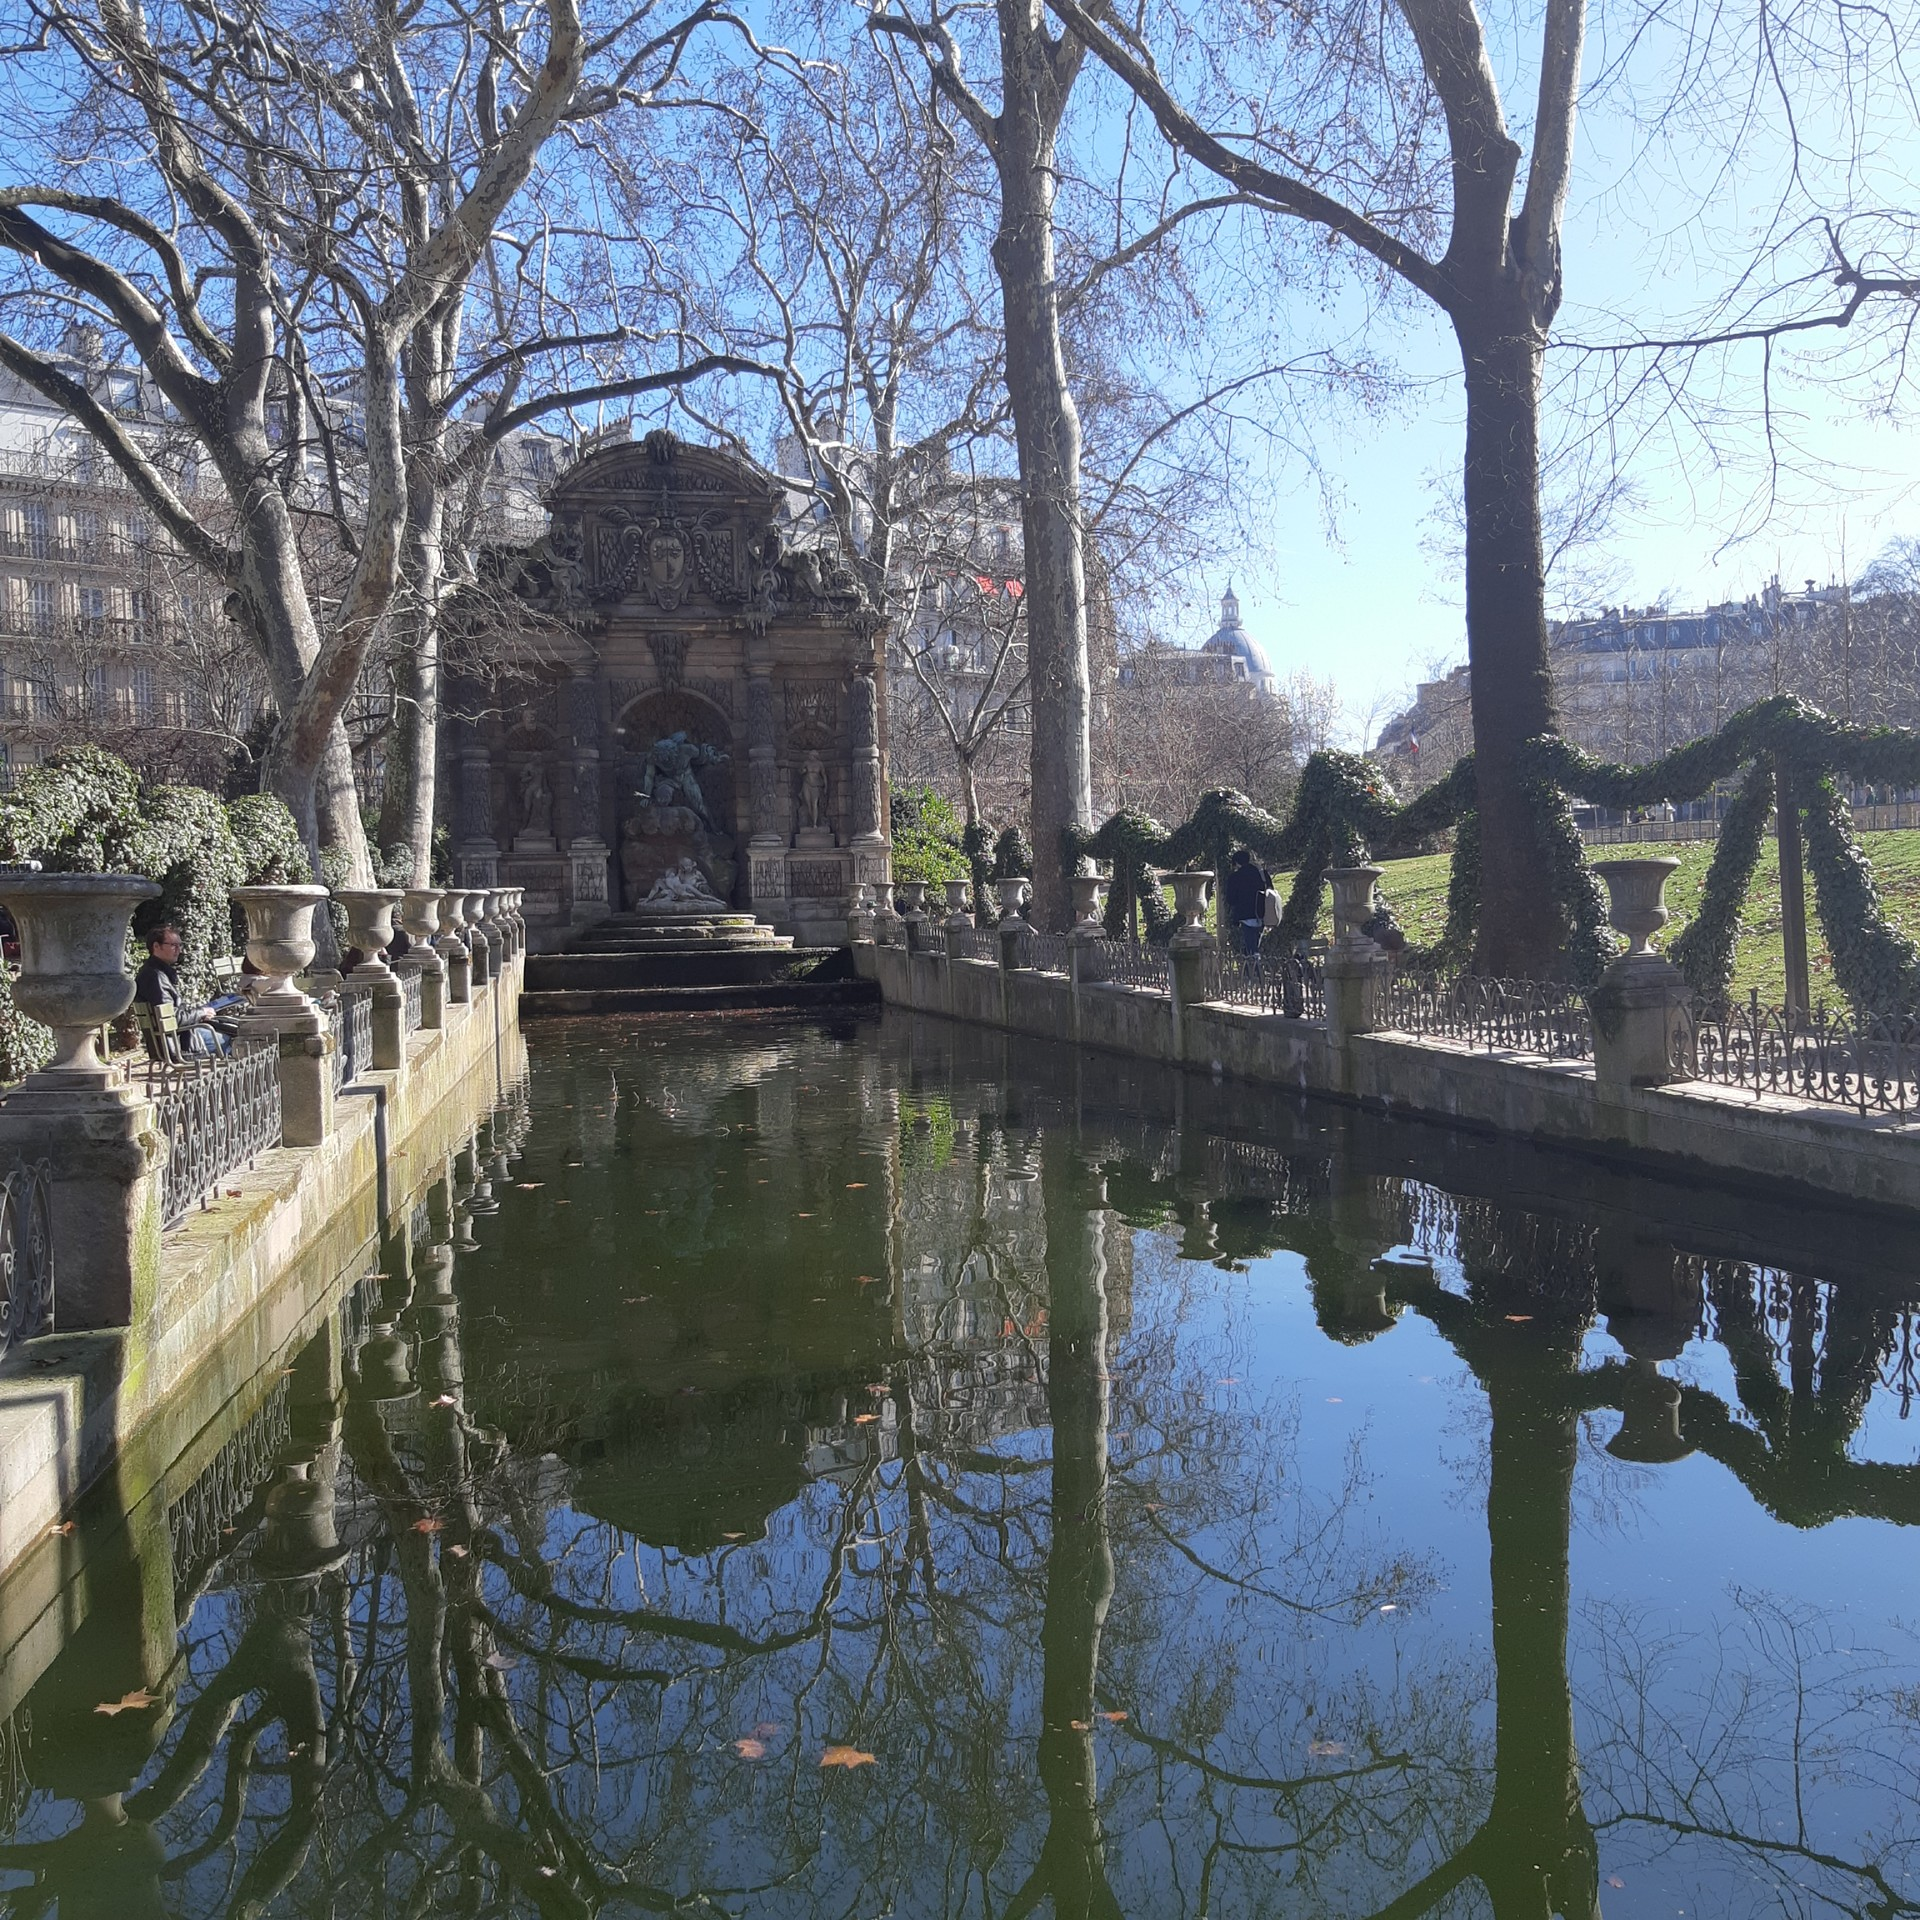 Between fountains, ducks and history